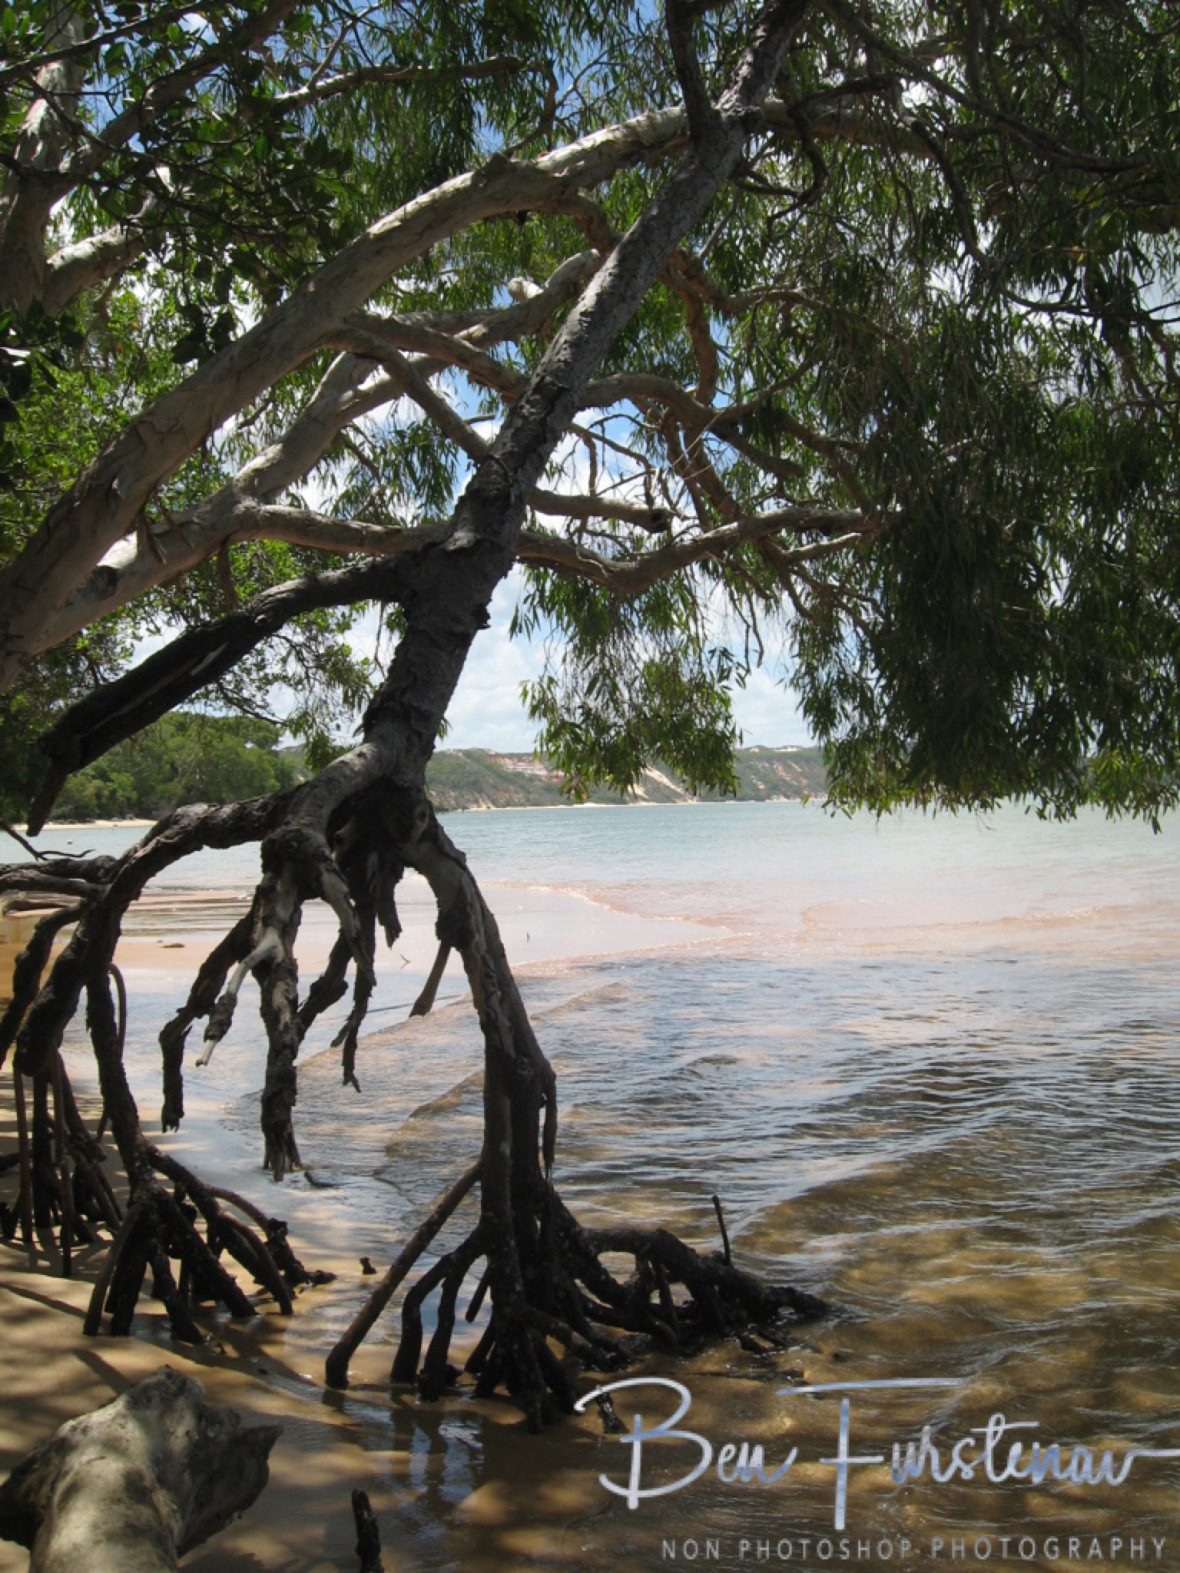 Mangrove Sanctuary at Elim Beach, Cape York Peninsula, Far North Queensland, Australia